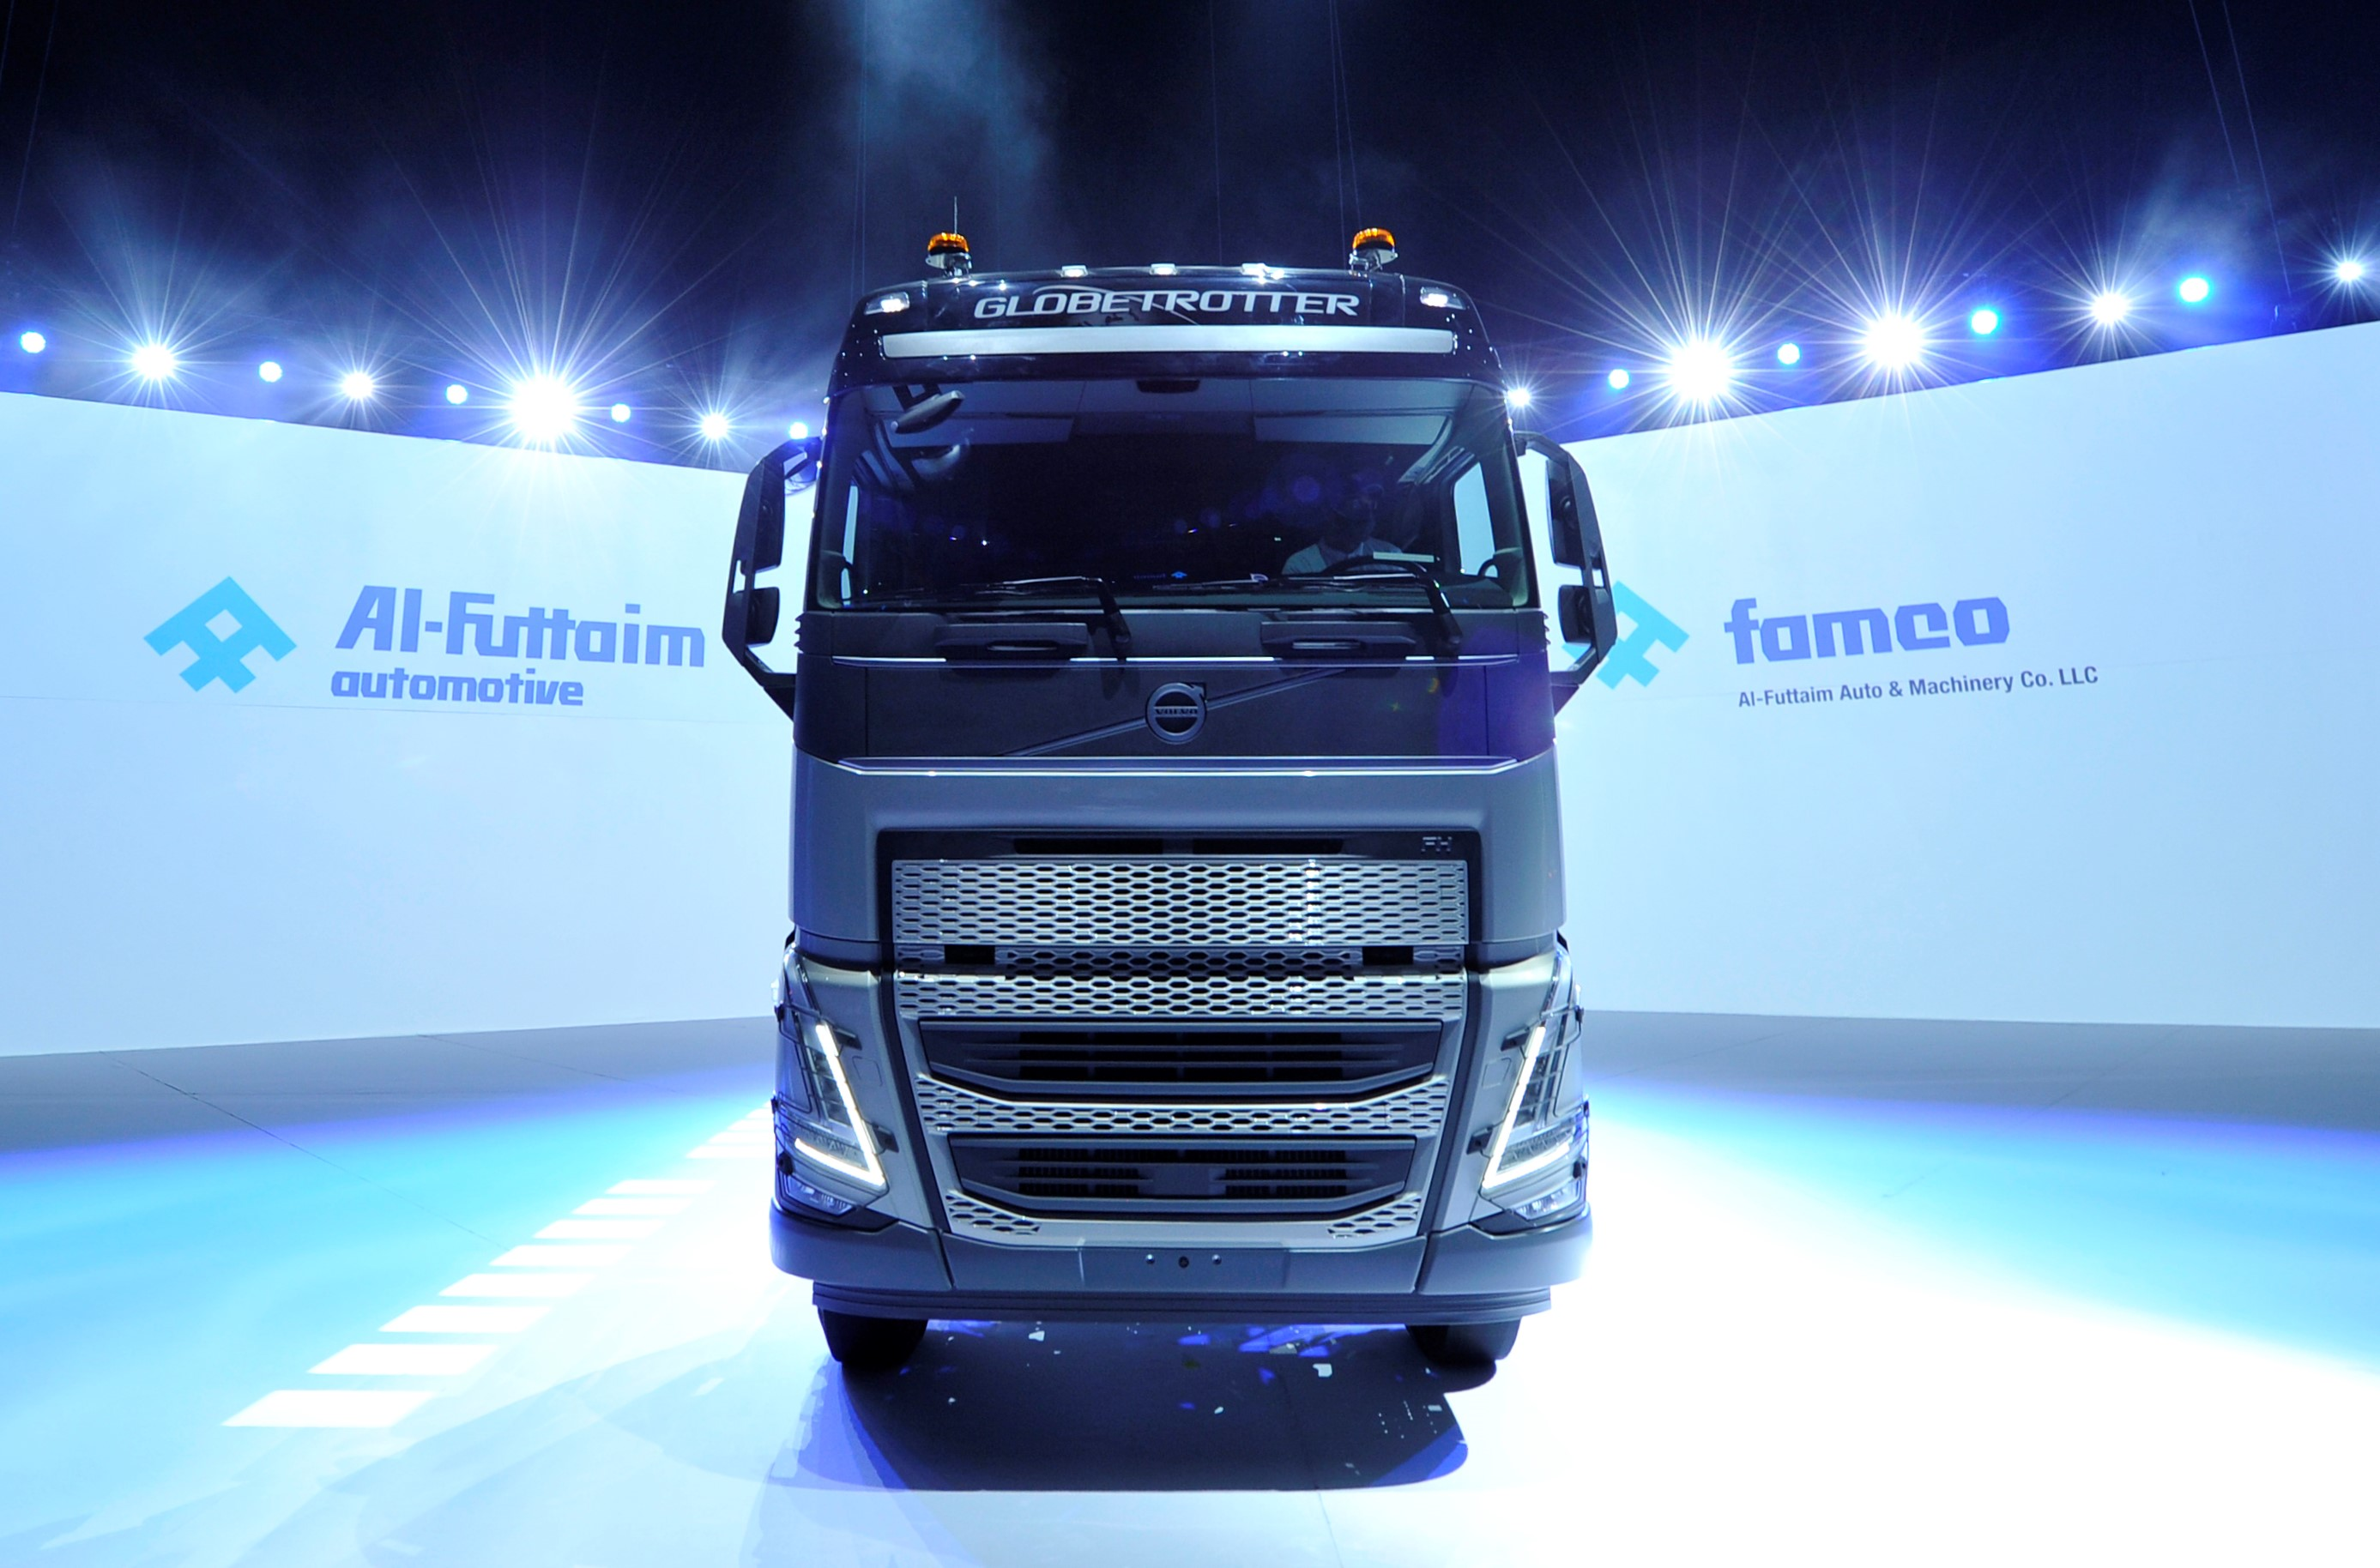 """FAMCO (Al-Futtaim Auto & Machinery Company), the UAE's leading heavy vehicle and machinery importer, has launched its new cutting-edge Volvo Trucks range as it reinforces its market-leading position in the Emirates. The new-generation FH, FM and FMX heavy-duty trucks have been redesigned to deliver even higher levels of productivity, class-leading safety features, as well as a more driver-friendly experience with an enhanced driver interface, interior space and overall visibility. These advanced models deliver a stronger return on range, giving users an environmental and financial saving in the process. FAMCO and Volvo Trucks have been partners in the UAE since 1978 and have established a solid relationship that extends far beyond just the initial sales cycle. With the support of the Swedish truck brand, FAMCO has invested in state-of-the-art facilities and software that works with the customer to ensure world-class levels of service, uninterrupted parts availability and, most importantly, reduced downtime for vehicles in the field. """"Revealing these new trucks in the presence of members of the Volvo Trucks international team is not only an honour, but also a return to some form of normality for us at FAMCO,"""" said Ramez Hamdan, Managing Director of FAMCO and Commercial Vehicles. """"FAMCO and Volvo Trucks truly are a team working closely together on a daily basis. And that is the secret to the success of these two brands, which then benefits our customers: bringing class-leading products to the market and providing the support and guidance our customers need, regardless of their industry or usage."""" """"In these challenging times, launching our new FH, FM and FMX models in the UAE has been a real team effort from everyone involved,"""" said Frank O'Connor, Vice President - Middle East and Turkey, Volvo Trucks International. """"With a strong focus on the driver environment, safety and productivity, this new line-up will help us to deliver on our promise to be our customers' best """